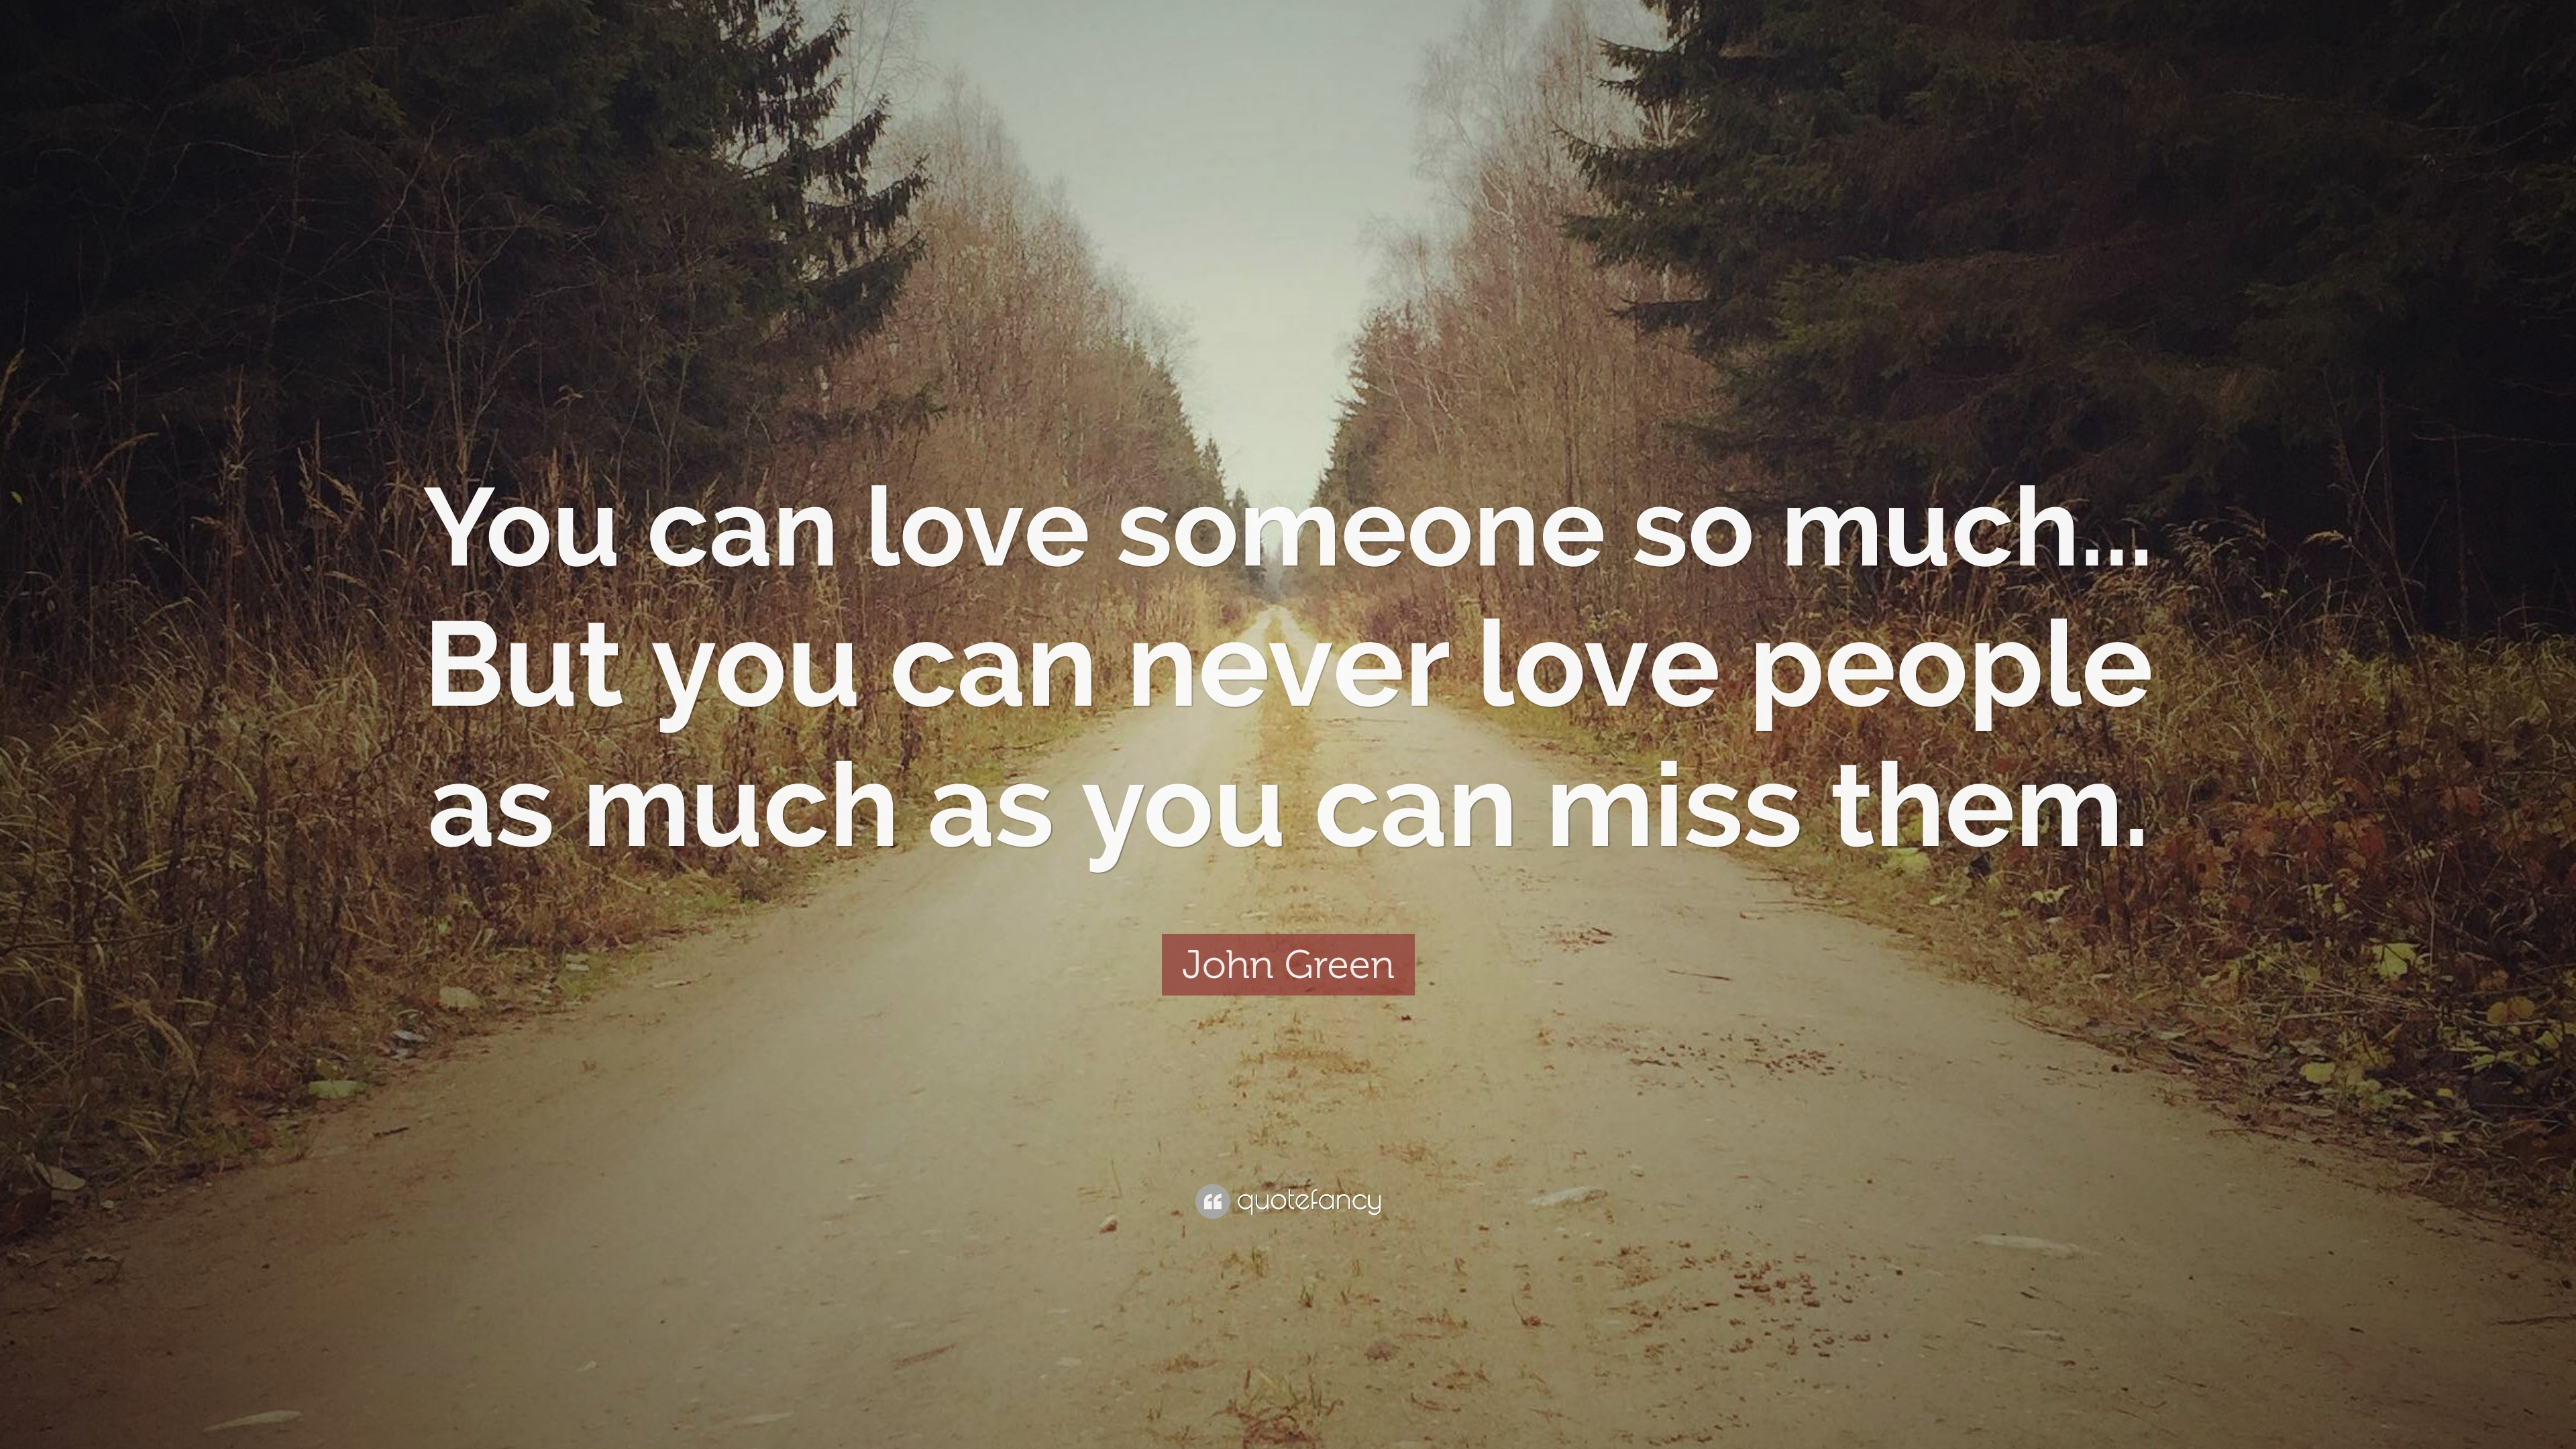 John Green Quote: You can love someone so much But you